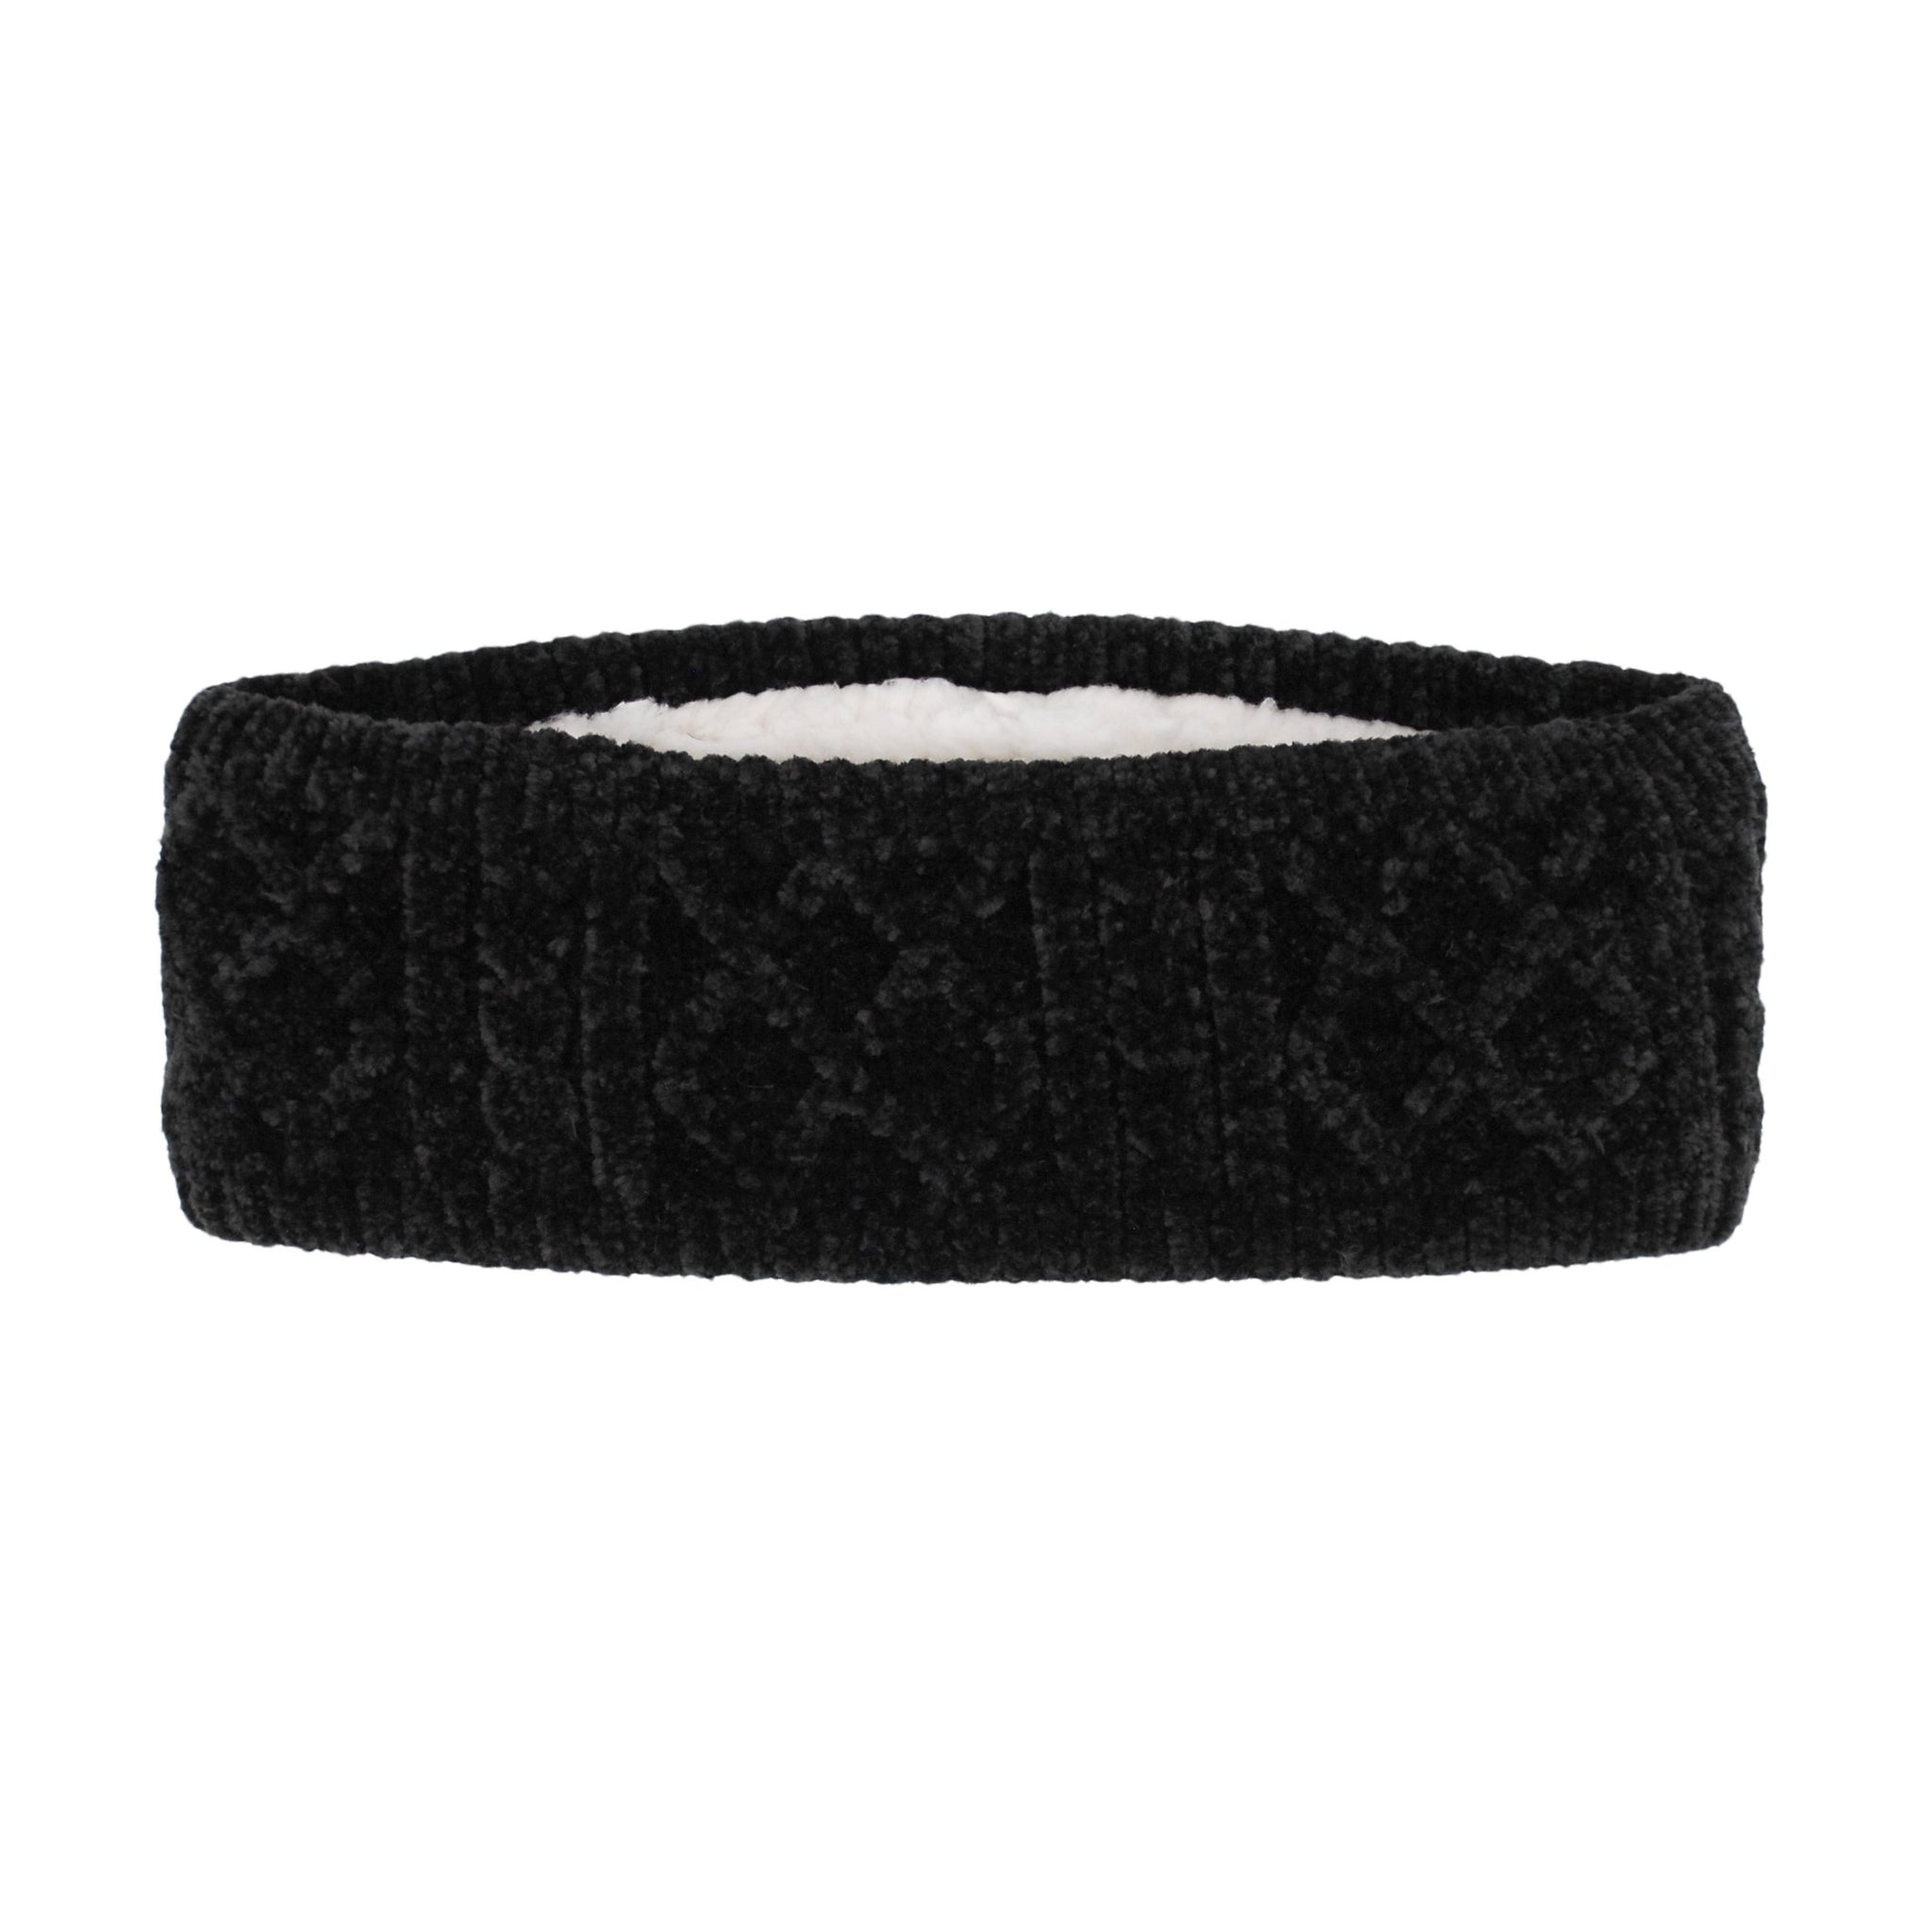 Chenille Knit Headband | Black